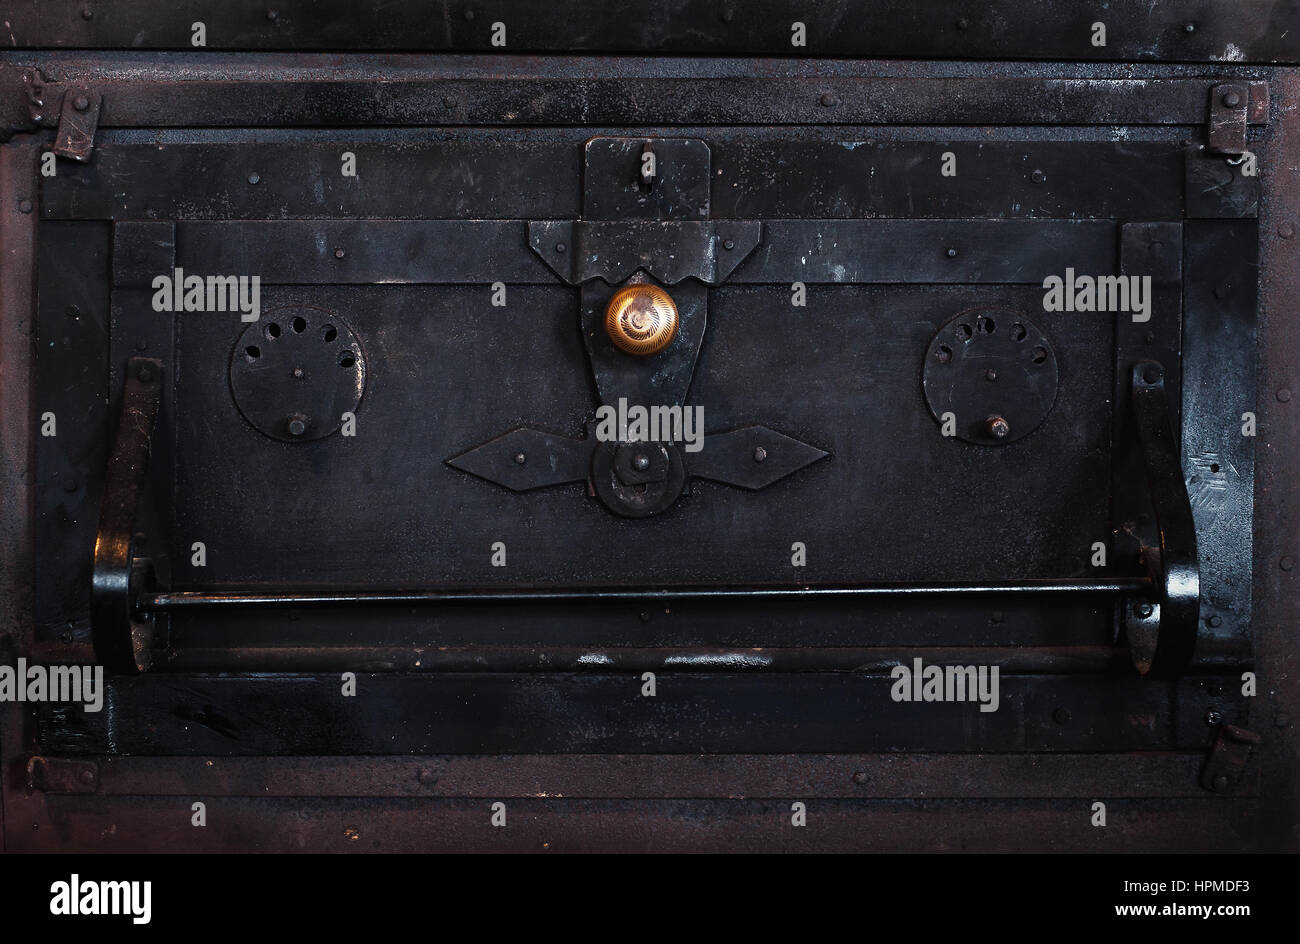 Closeup view of an old metal oven. Stock Photo